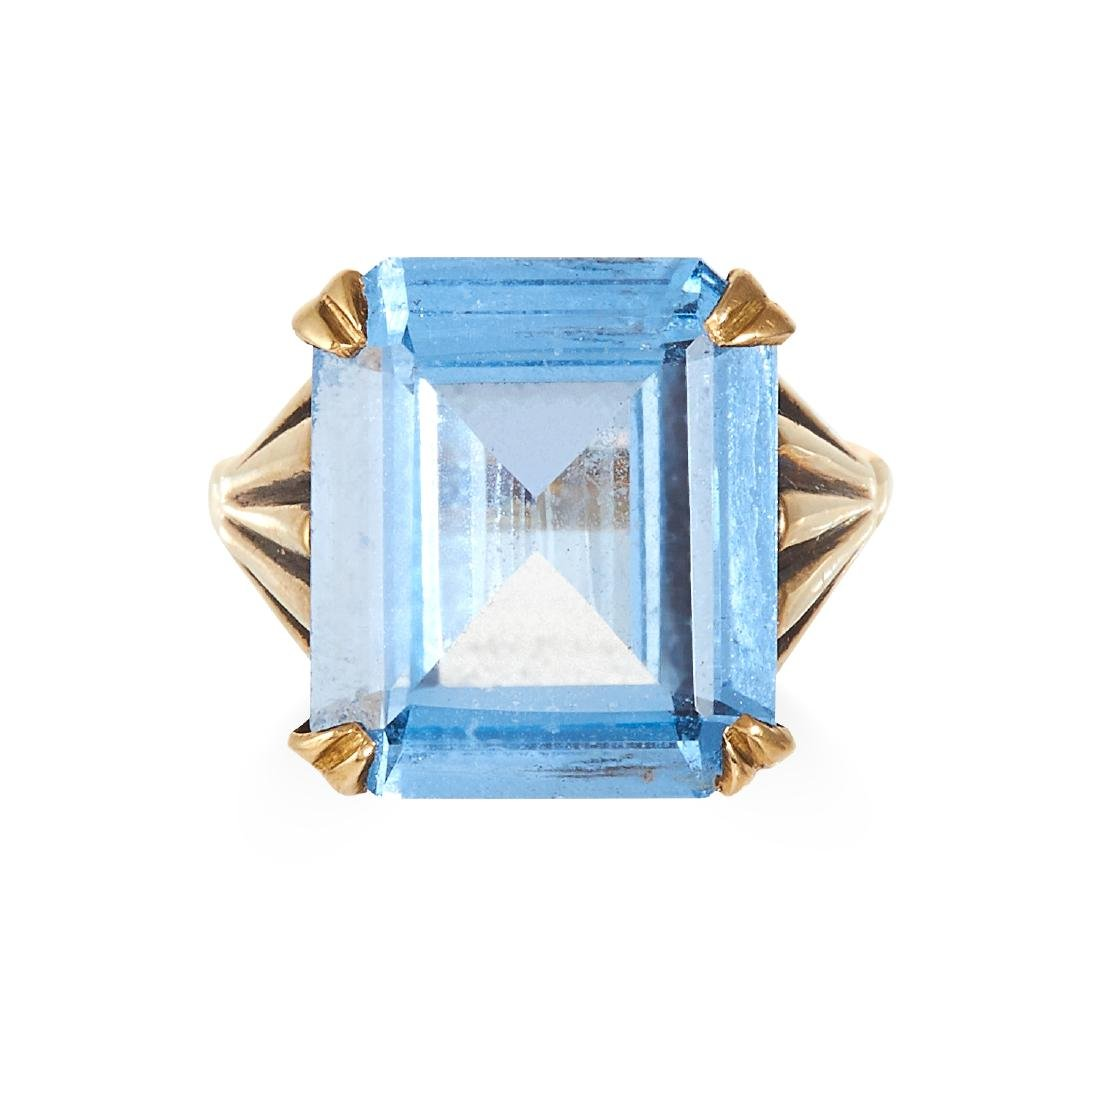 A BLUE SPINEL DRESS RING in yellow gold, set with a